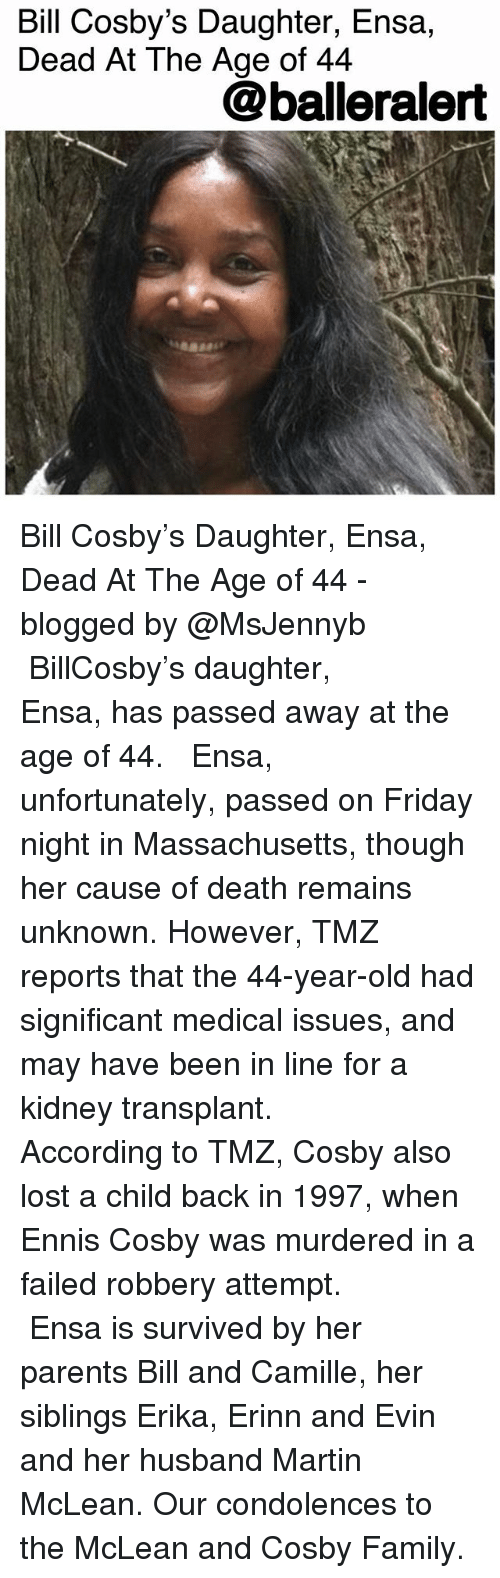 Bill Cosby, Family, and Friday: Bill Cosby's Daughter, Ensa,  Dead At The Age of 44  @balleralert Bill Cosby's Daughter, Ensa, Dead At The Age of 44 - blogged by @MsJennyb ⠀⠀⠀⠀⠀⠀⠀ ⠀⠀⠀⠀⠀⠀⠀ BillCosby's daughter, Ensa, has passed away at the age of 44. ⠀⠀⠀⠀⠀⠀⠀ ⠀⠀⠀⠀⠀⠀⠀ Ensa, unfortunately, passed on Friday night in Massachusetts, though her cause of death remains unknown. However, TMZ reports that the 44-year-old had significant medical issues, and may have been in line for a kidney transplant. ⠀⠀⠀⠀⠀⠀⠀ ⠀⠀⠀⠀⠀⠀⠀ According to TMZ, Cosby also lost a child back in 1997, when Ennis Cosby was murdered in a failed robbery attempt. ⠀⠀⠀⠀⠀⠀⠀ ⠀⠀⠀⠀⠀⠀⠀ Ensa is survived by her parents Bill and Camille, her siblings Erika, Erinn and Evin and her husband Martin McLean. Our condolences to the McLean and Cosby Family.